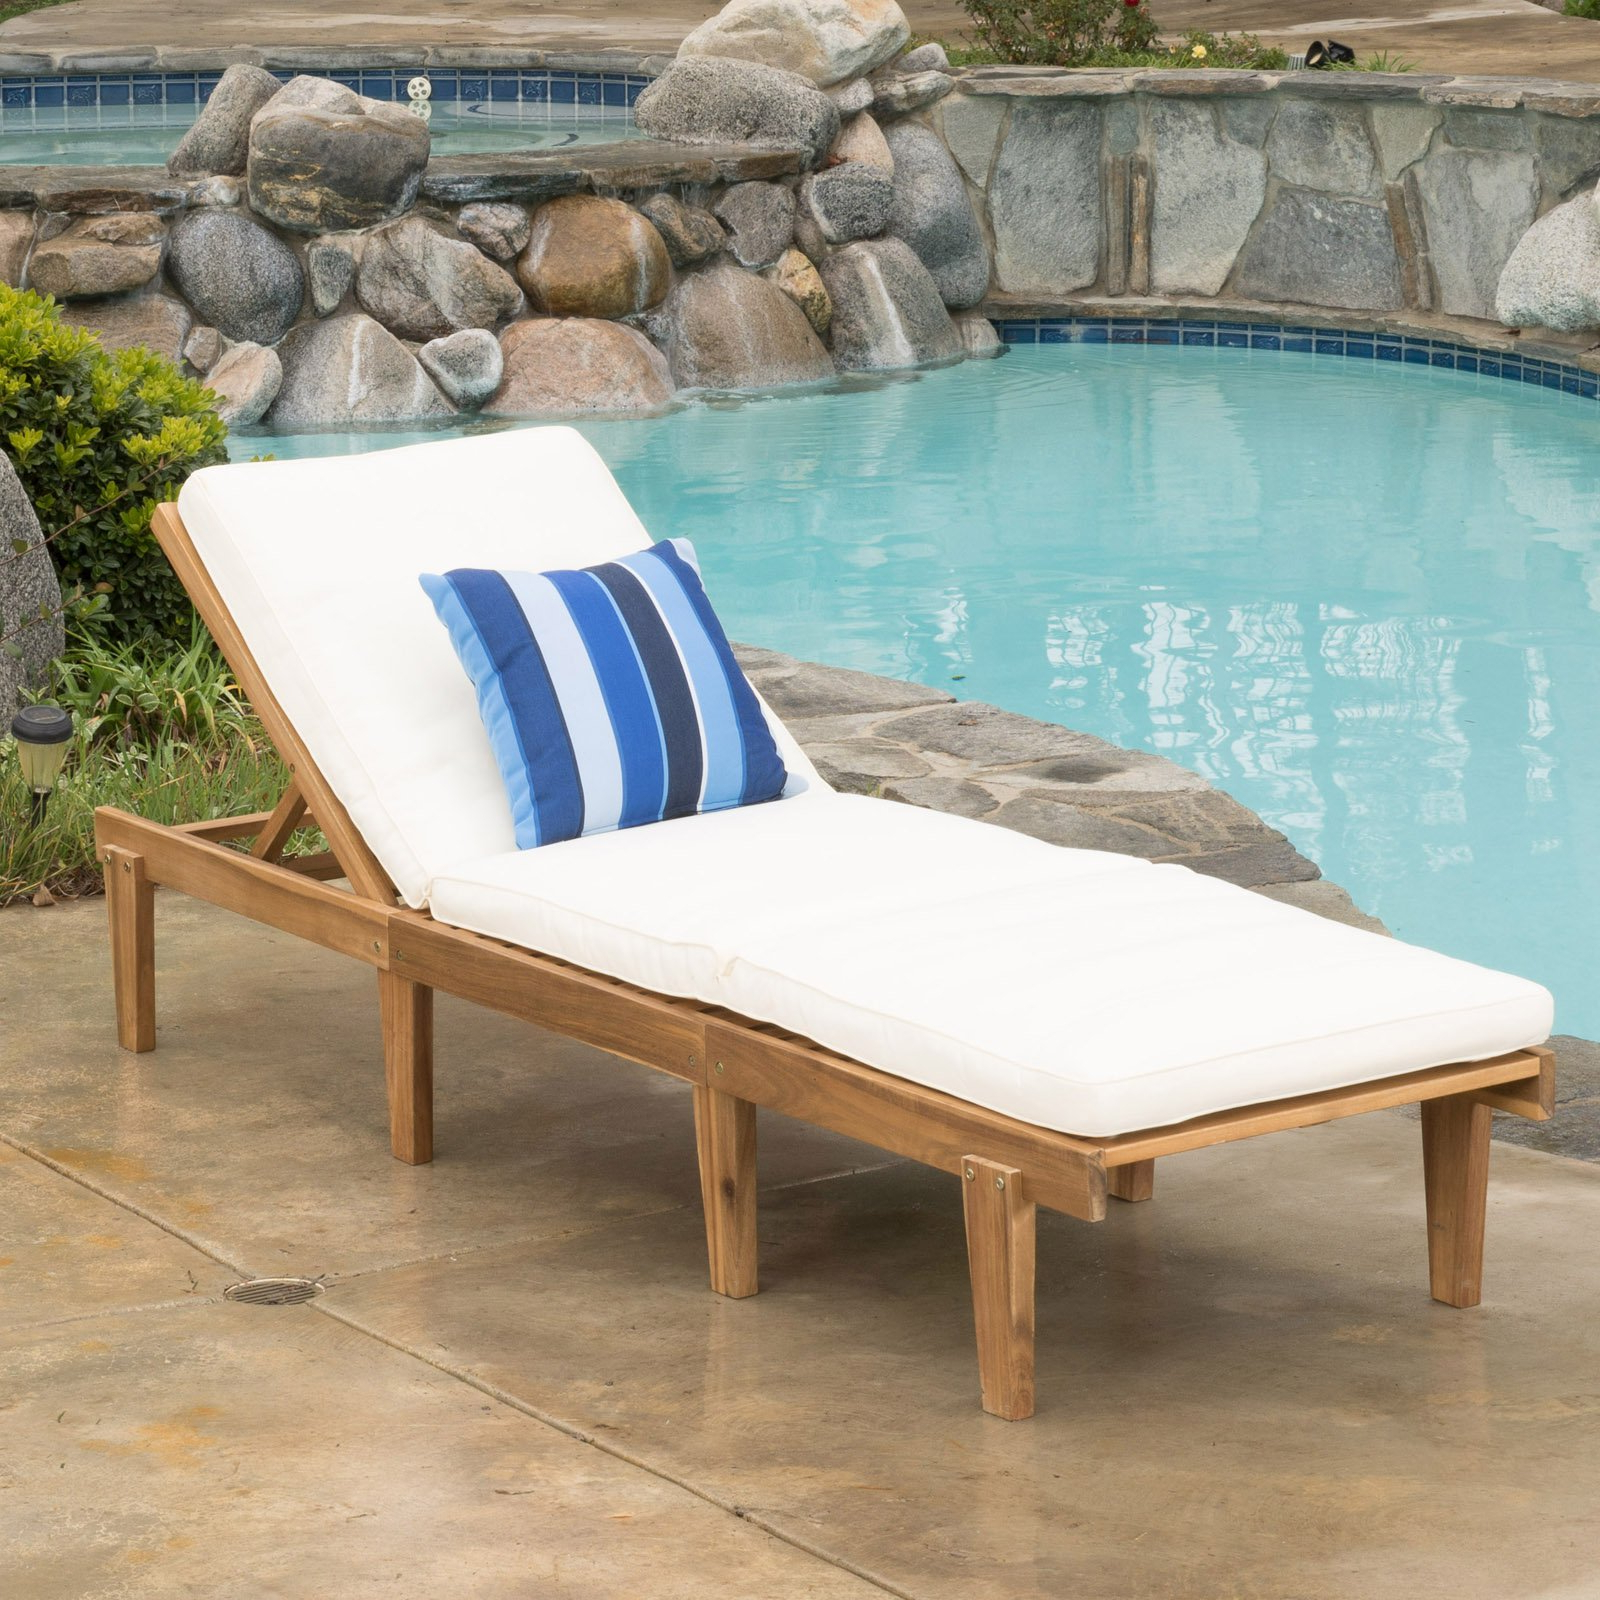 Ariana Acacia Wood Outdoor Chaise Lounge With Cushion With Most Current Oudoor Modern Acacia Wood Chaise Lounges With Cushion (View 15 of 25)